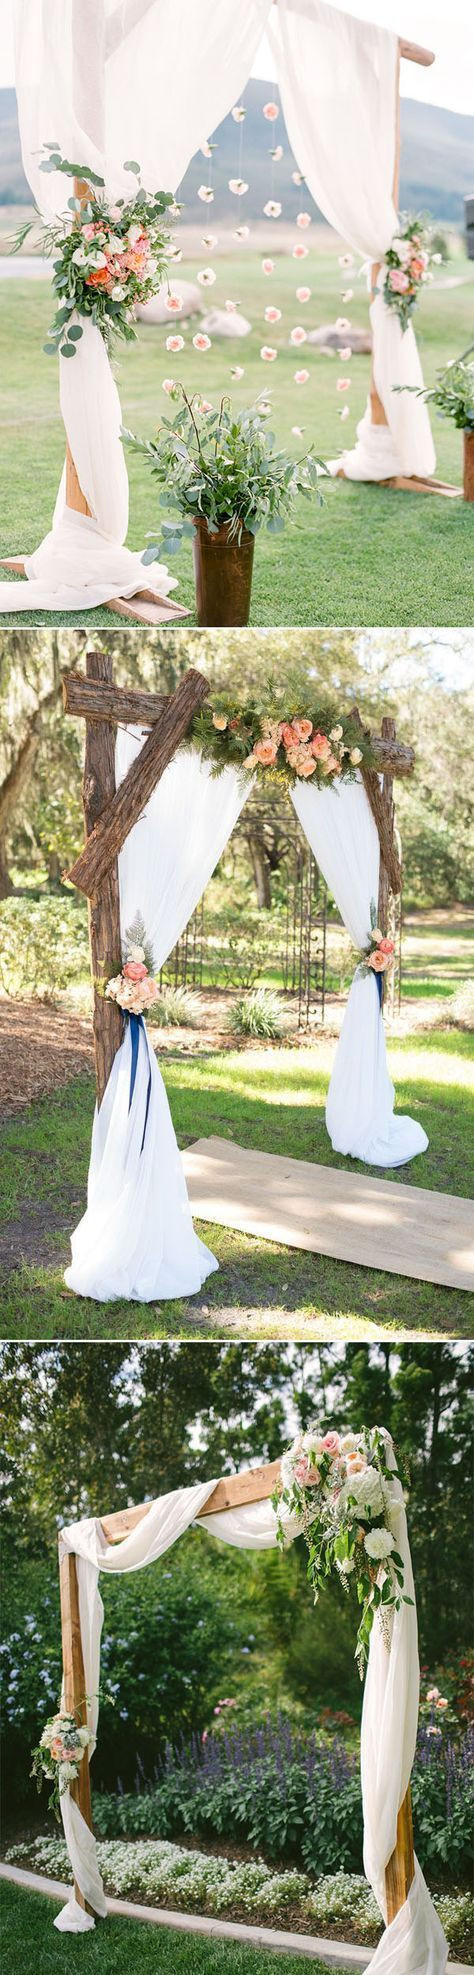 Best ideas about DIY Wedding Altar . Save or Pin Best 25 Wedding arch tulle ideas on Pinterest Now.